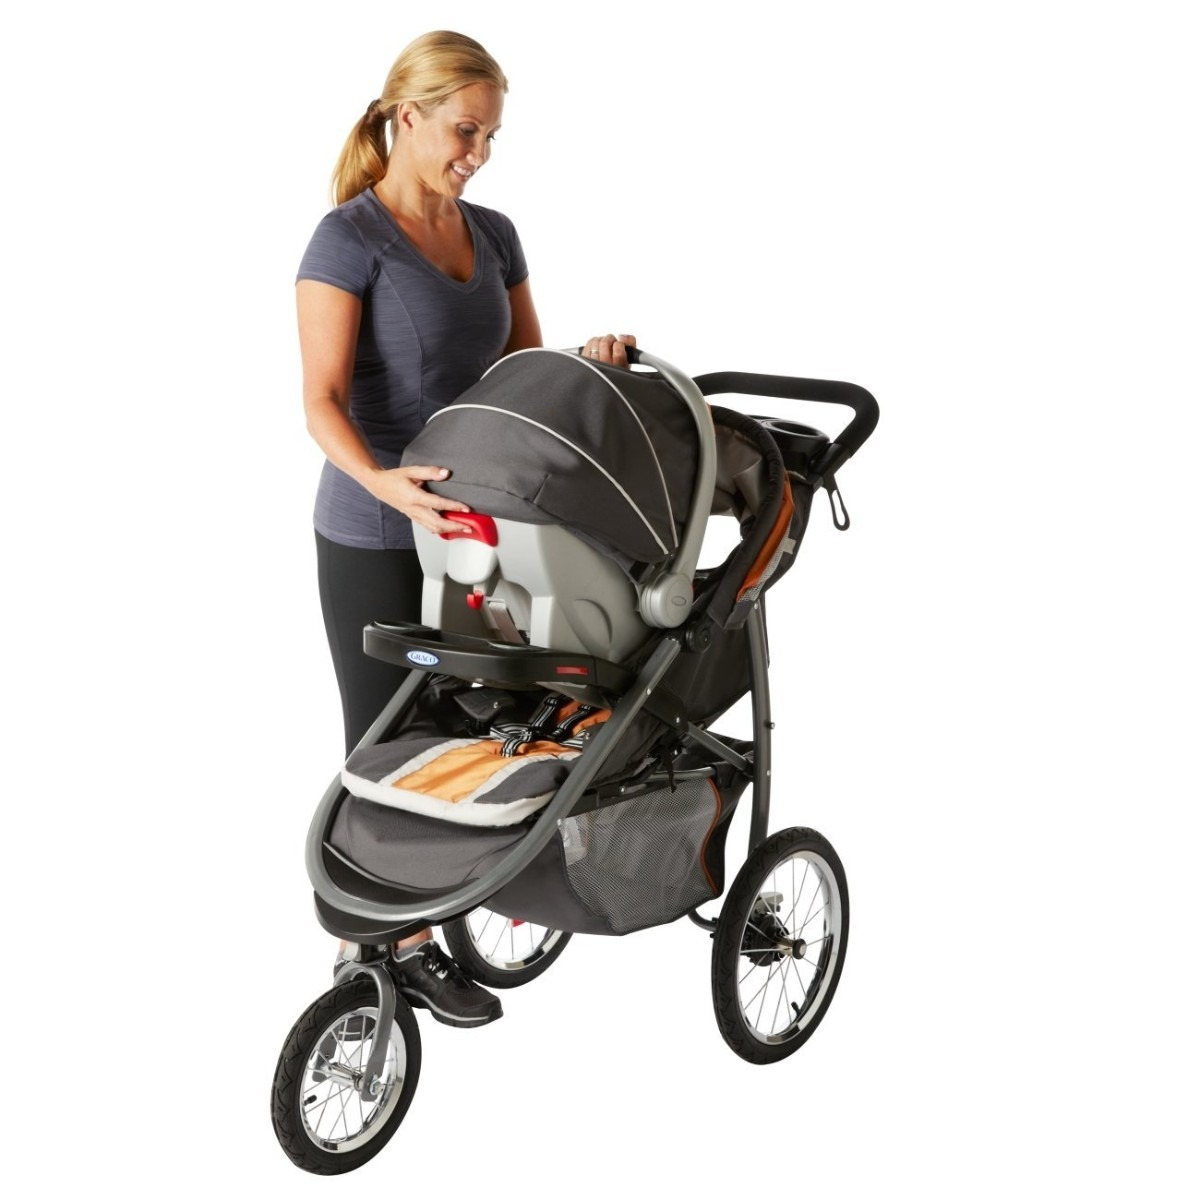 Carreola infantil 3 ruedas porta bebe graco fastaction hm4 for Coches para 3 sillas infantiles